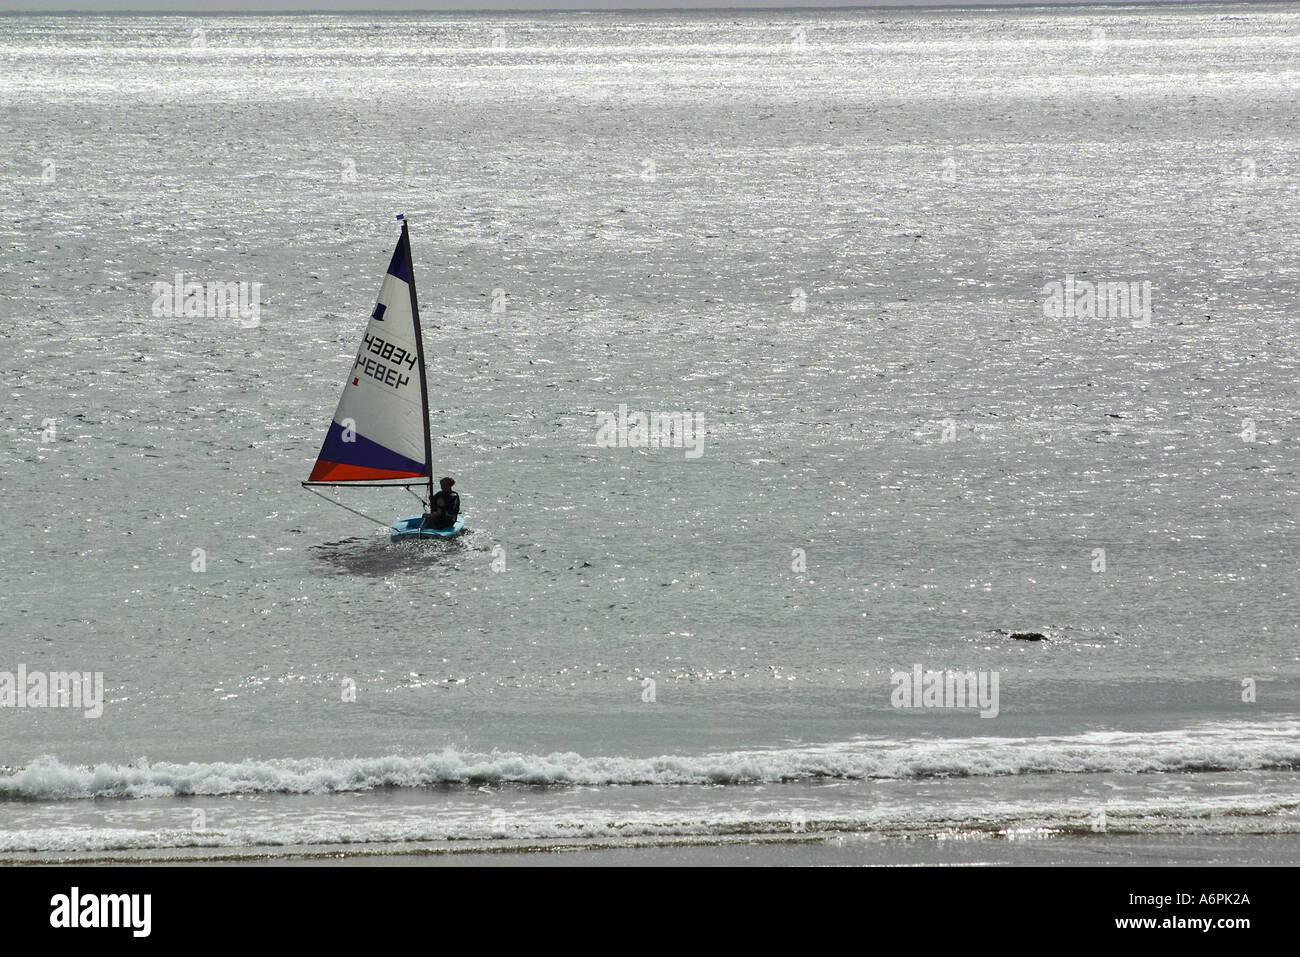 Small sail boat heading out to sea - Stock Image